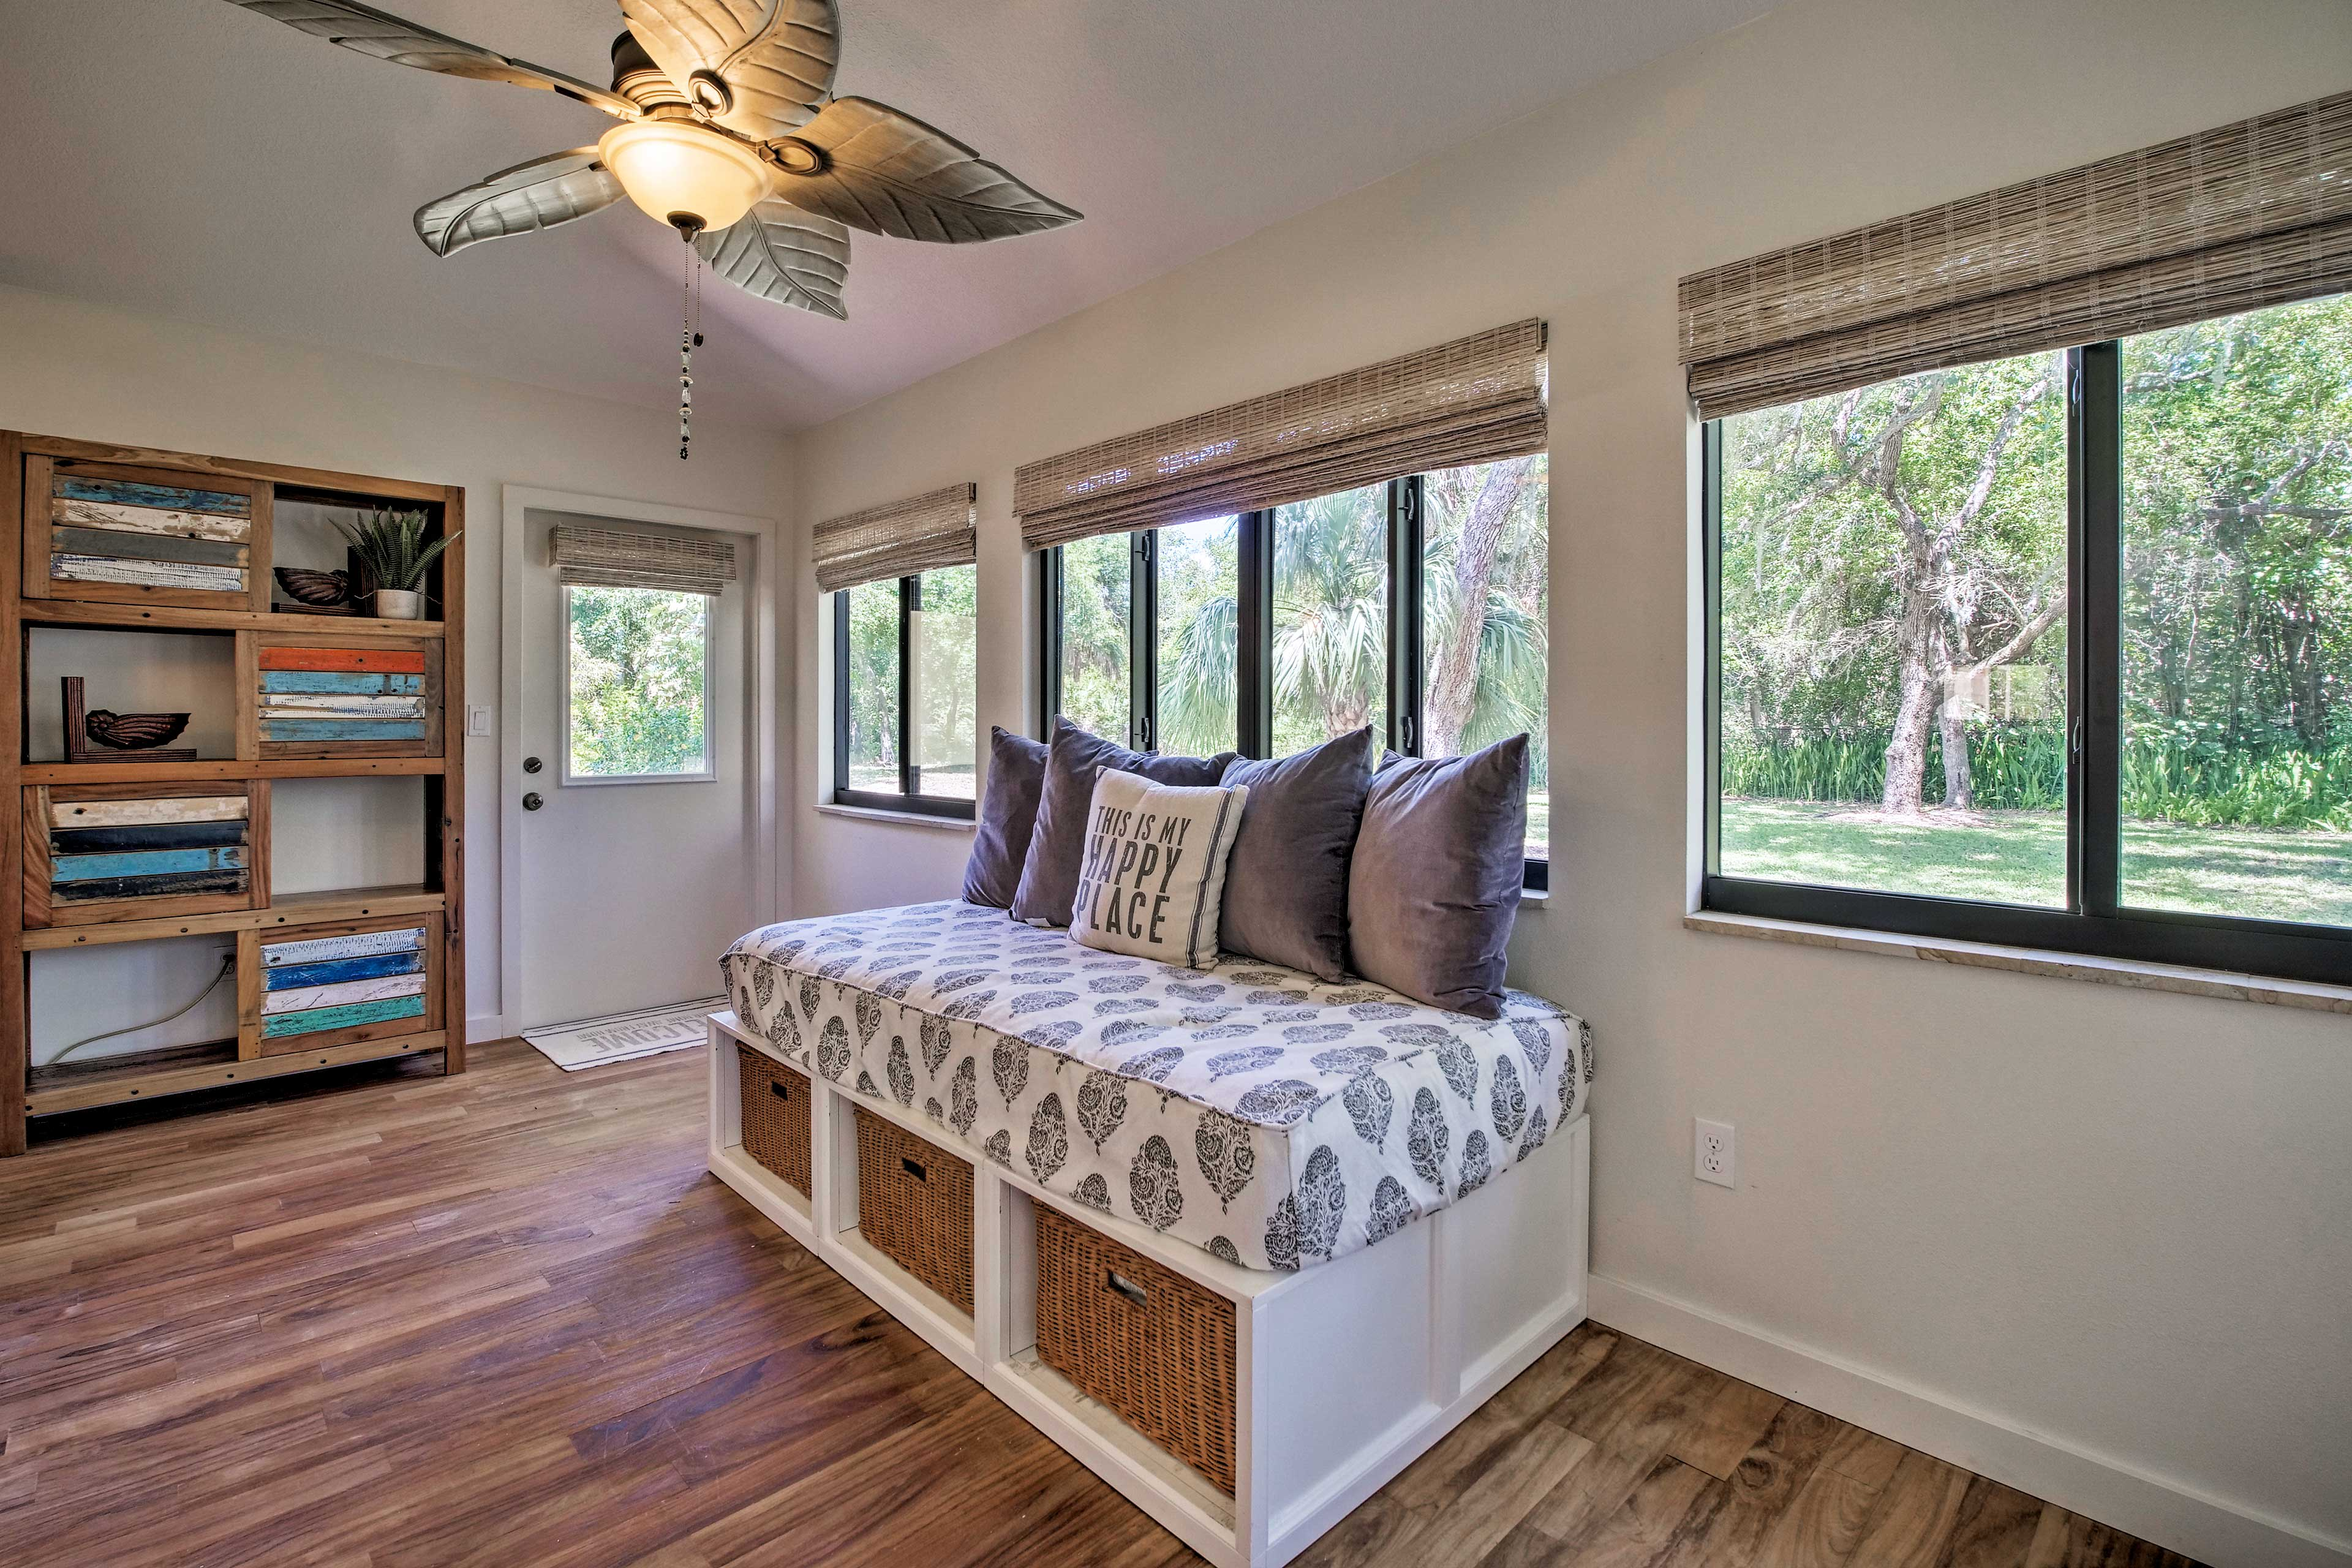 Take a mid day nap in the sun room on this twin bed